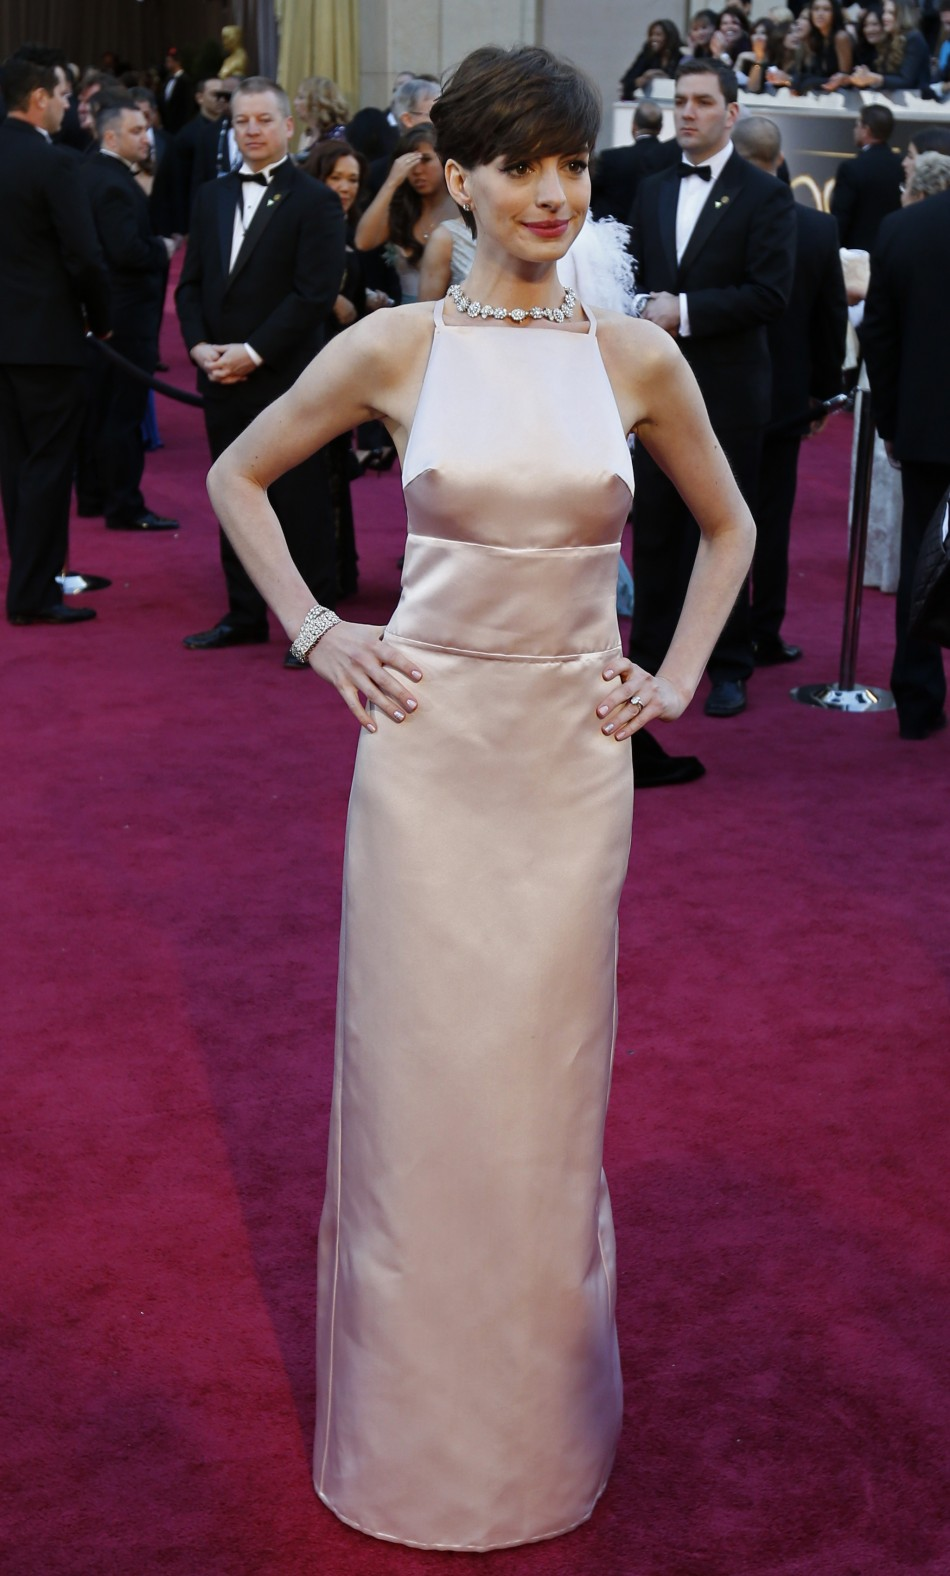 oscars 2013 worst dressed celebrities on red carpet Dilovelys Extra Oscars 2013 + Defense of Seth MacFarlane